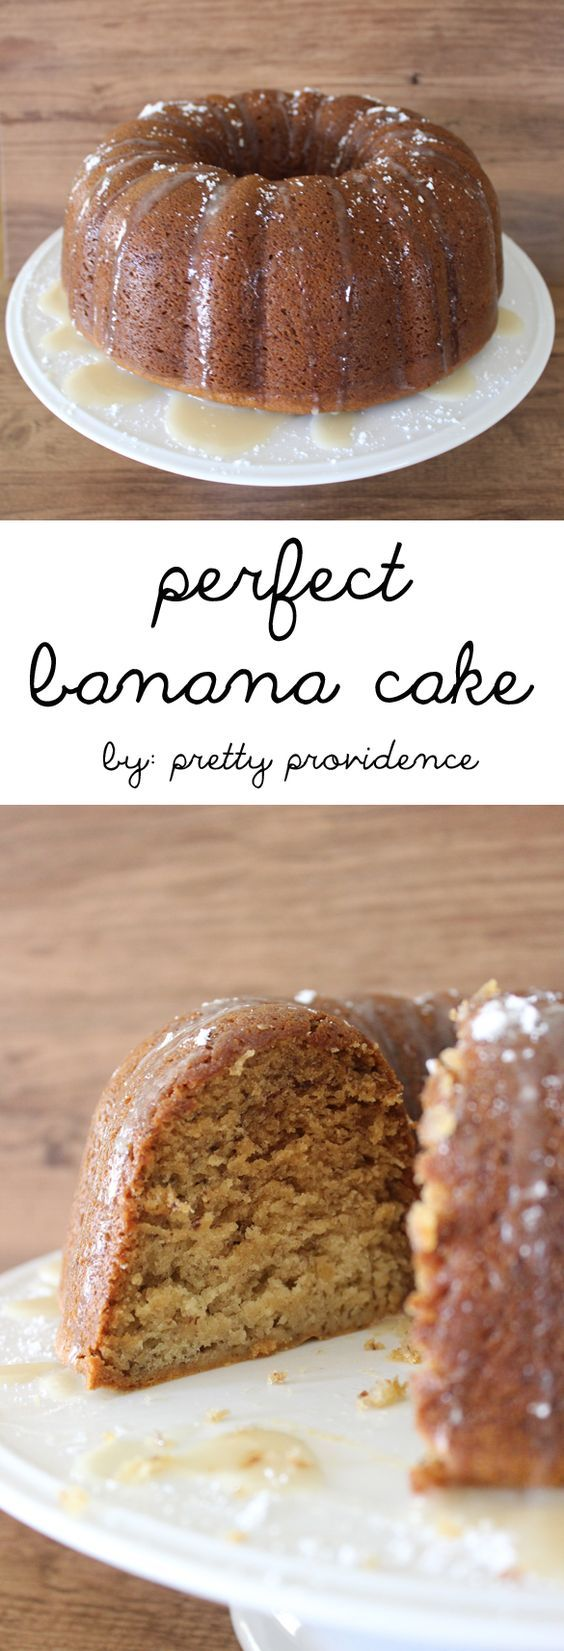 Guys this banana cake with vanilla glaze gets ⭐️⭐️⭐️⭐️⭐️! It's so easy to make, and it's lick-the-plate-clean good. Plus, who doesn't love a recipe that could be dubbed a breakfast or a dessert ?! A perfect recipe to make ahead when family comes too, because it tastes even better the next day! Did I convince you yet ?!